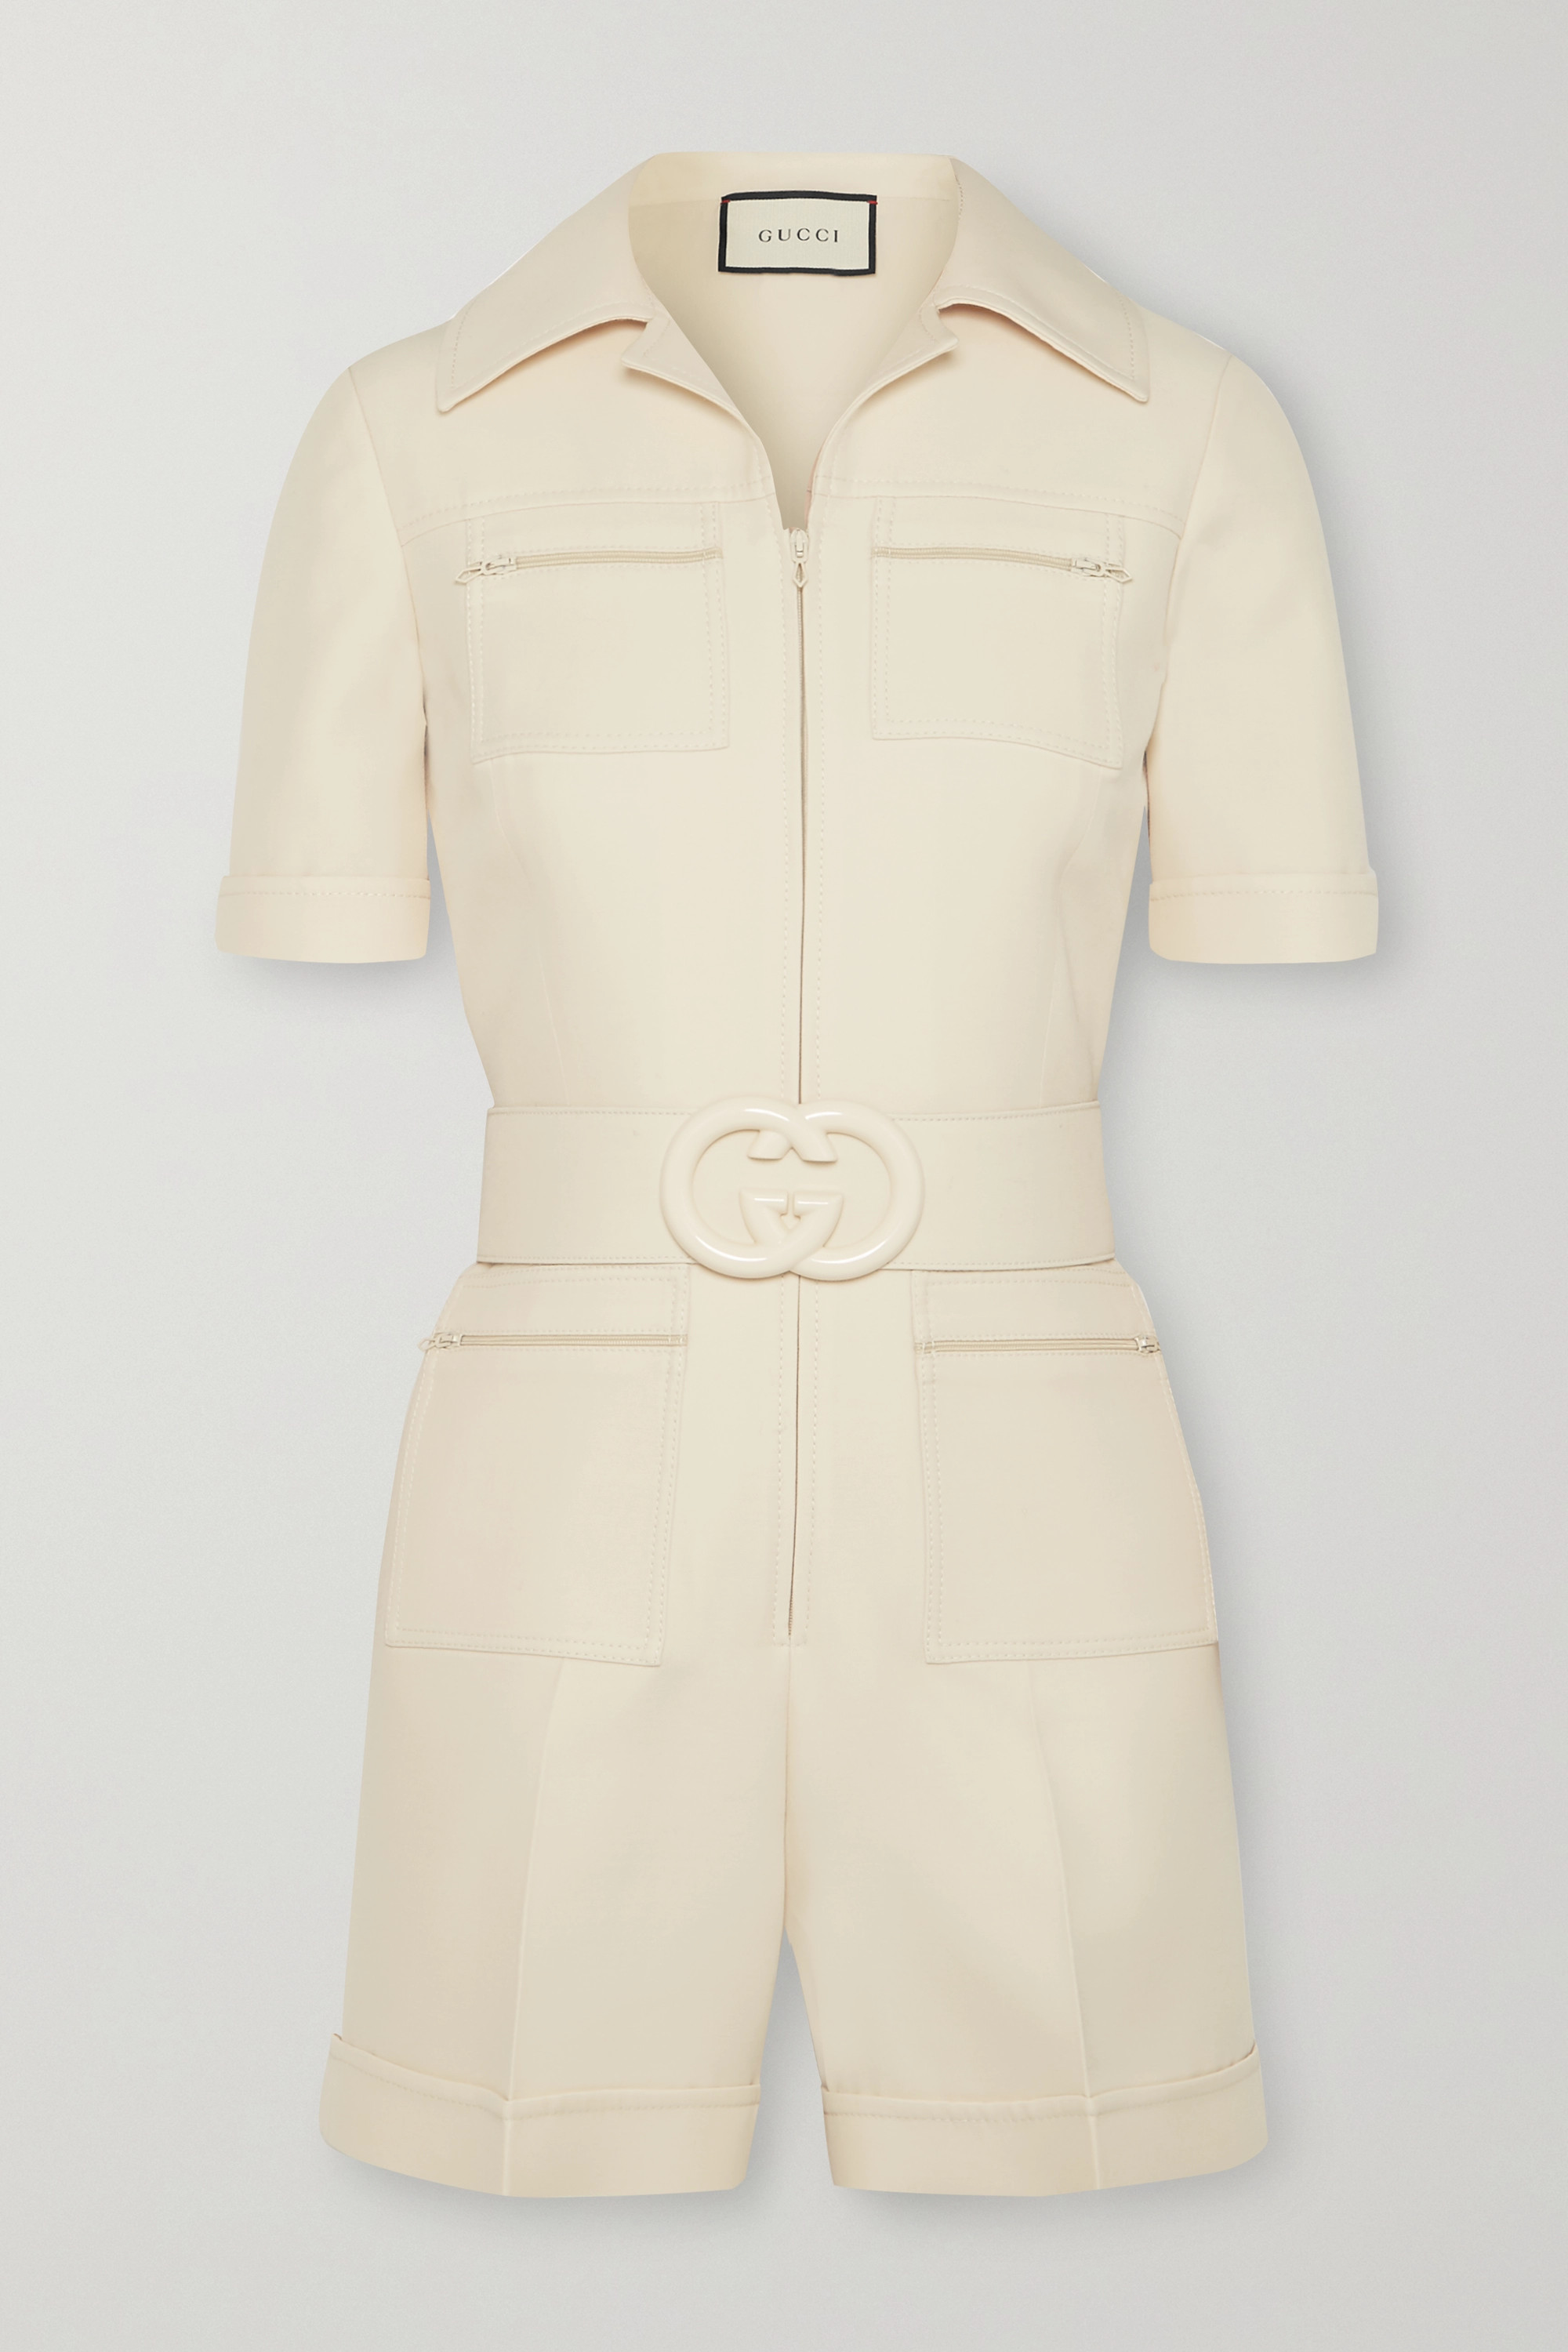 Gucci Belted wool and silk-blend cady playsuit